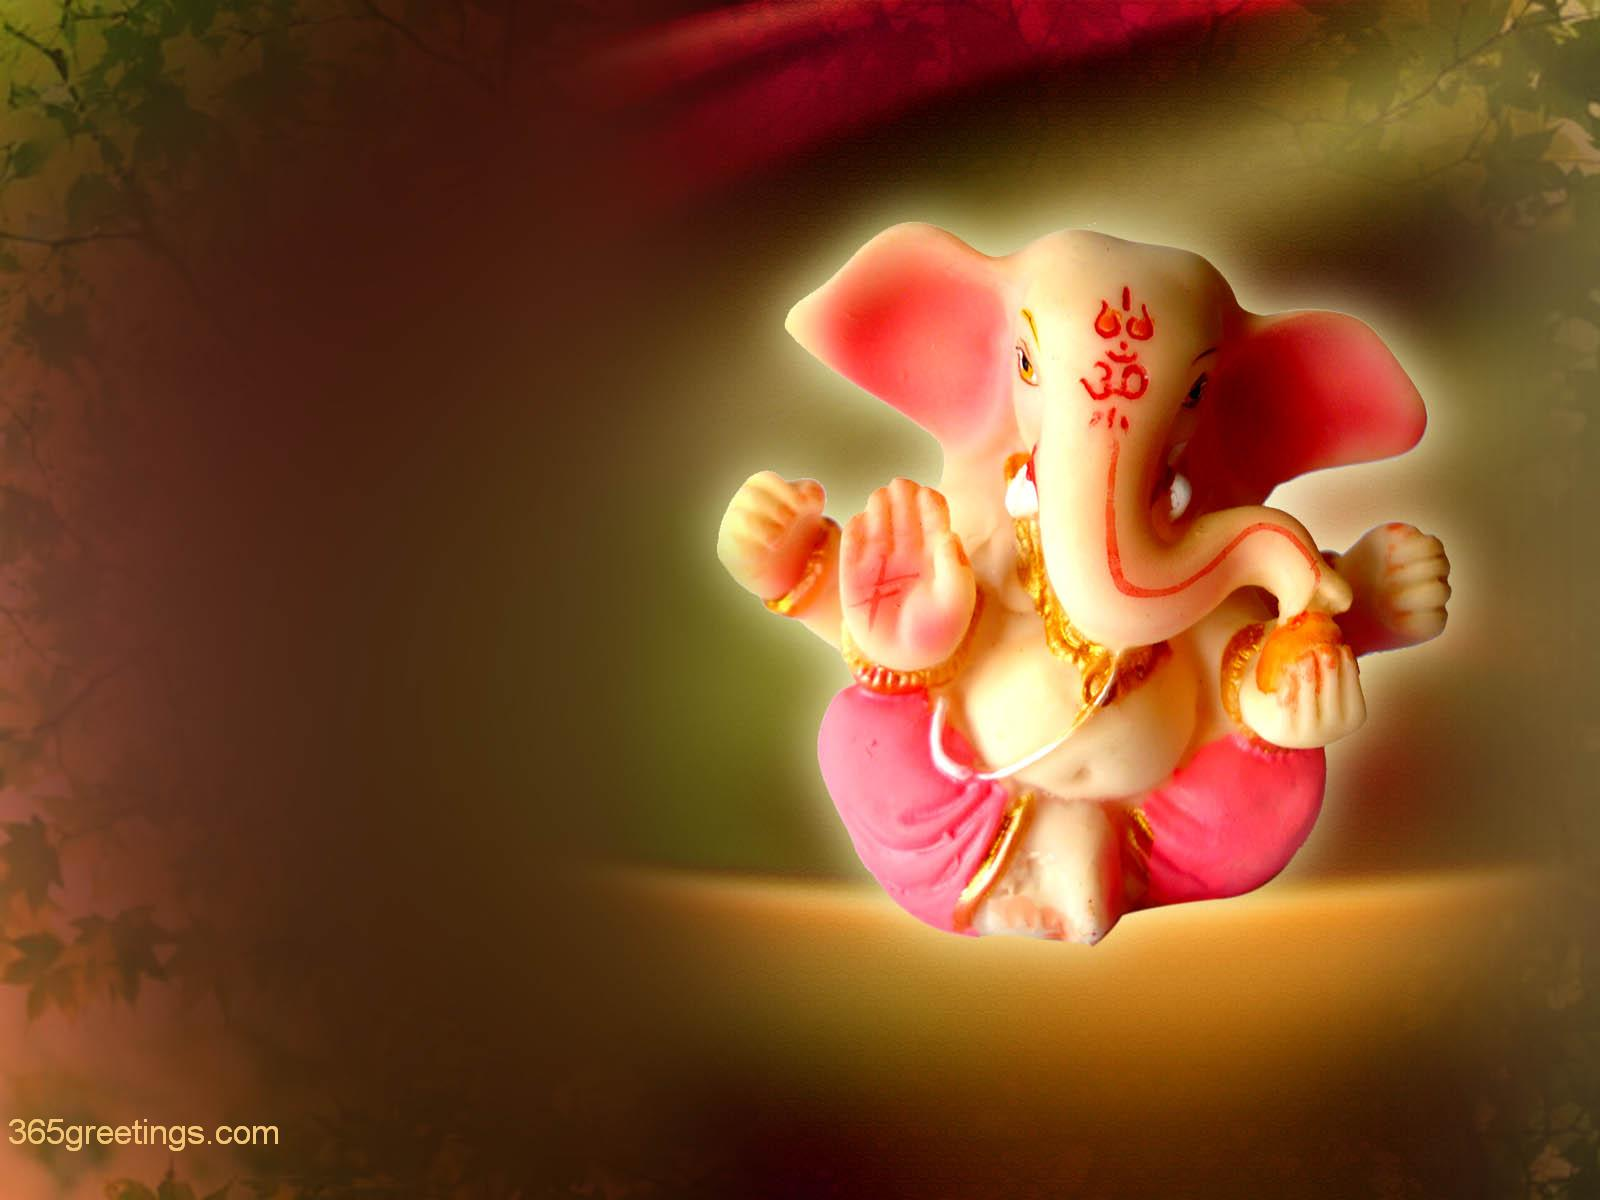 Wallpaper download ganesh - Lord Ganesha Wallpapers Pictures And Images For Facebook And Hd Wallpaper Free Downloads